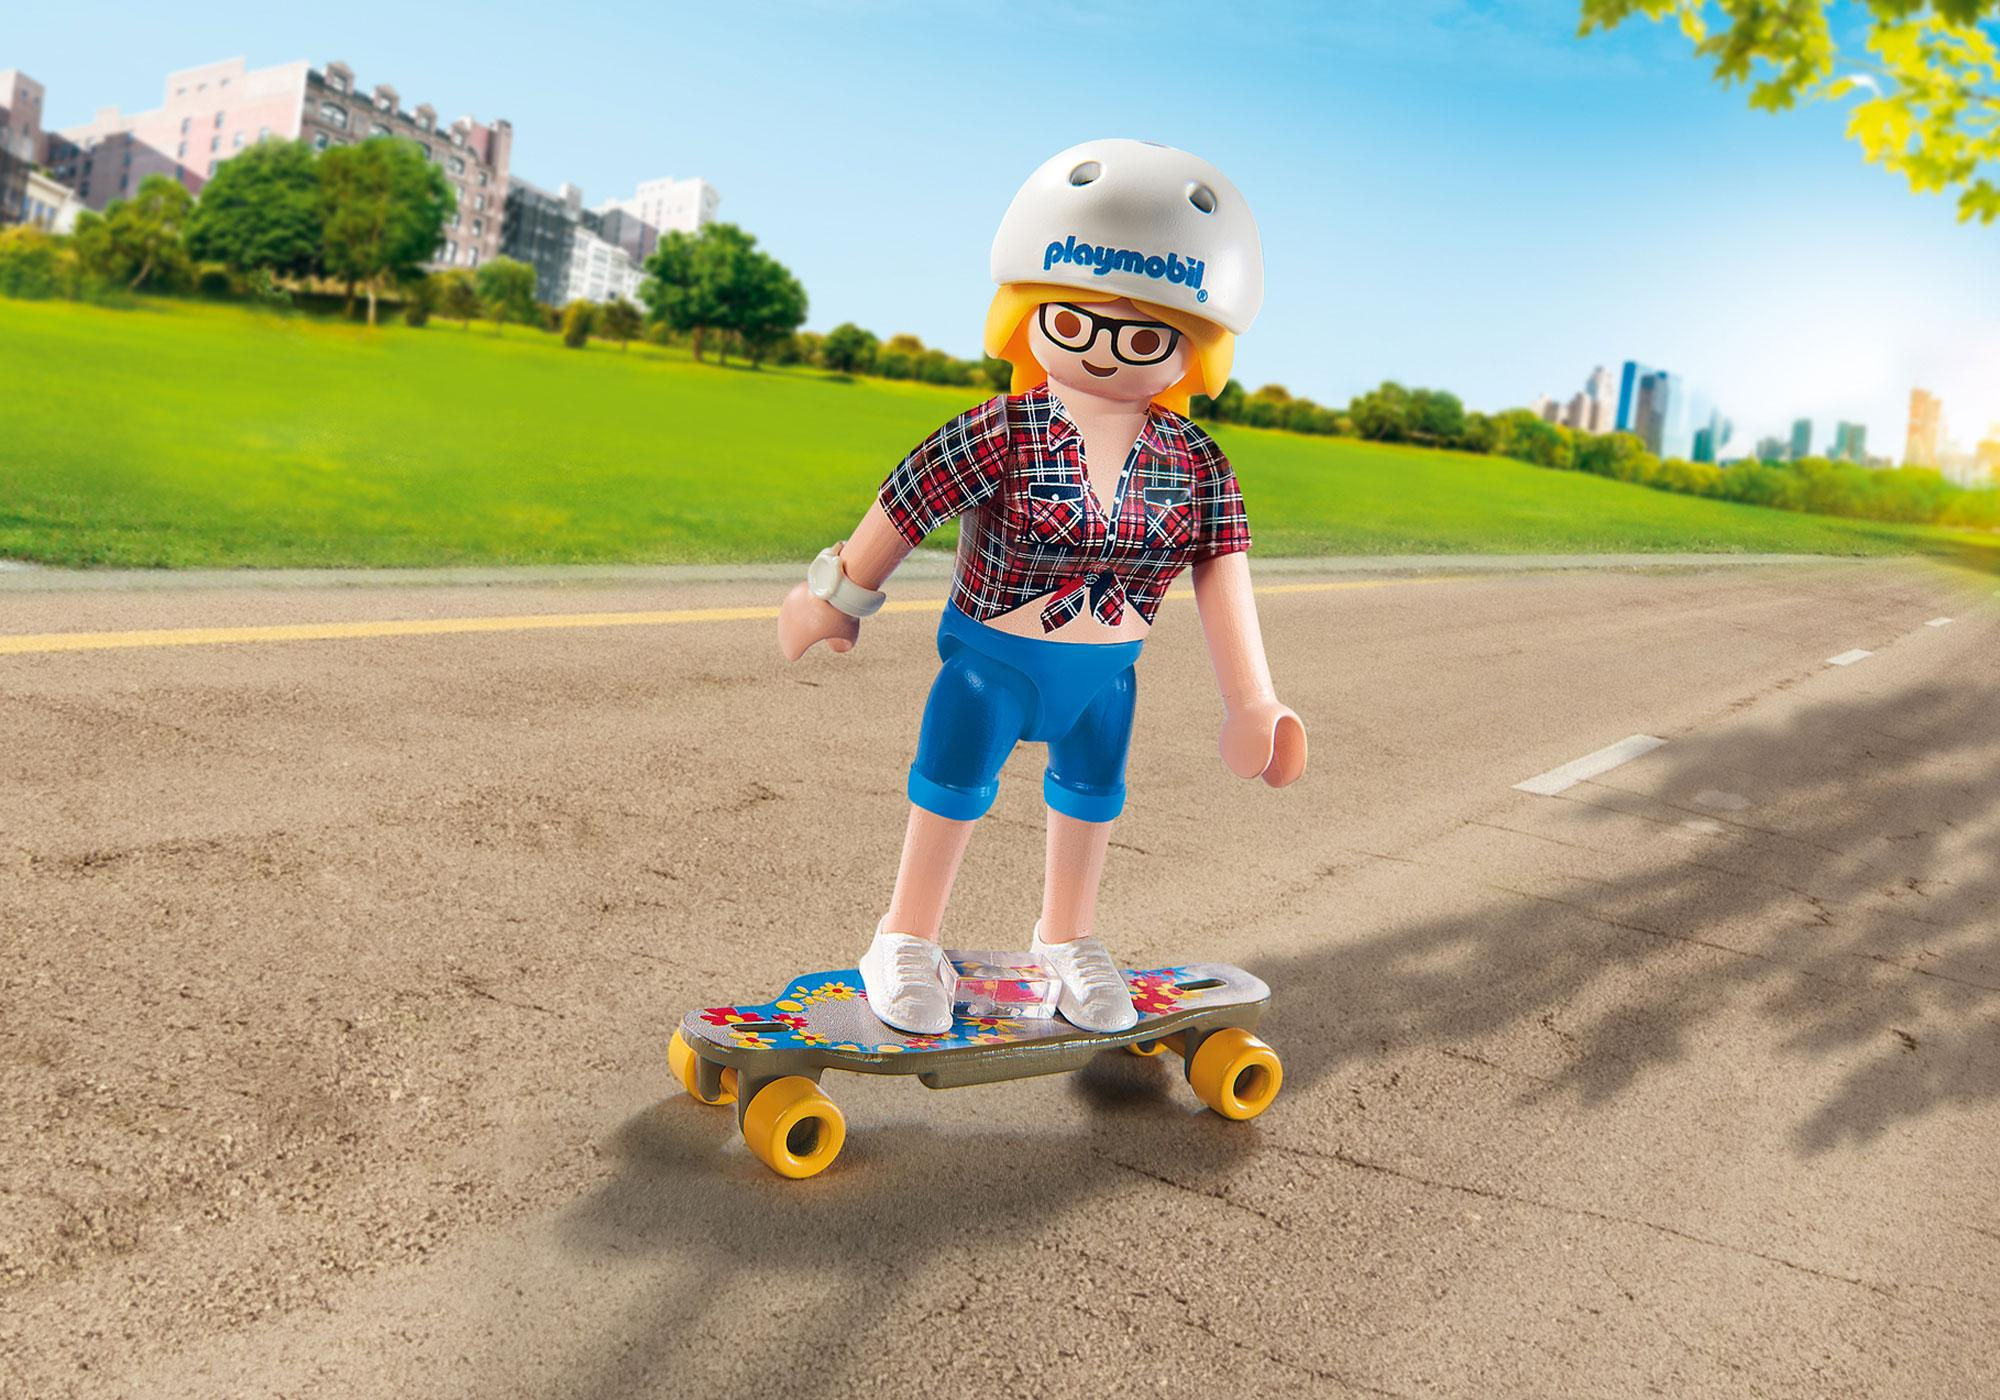 http://media.playmobil.com/i/playmobil/9338_product_detail/Teenie mit Longboard